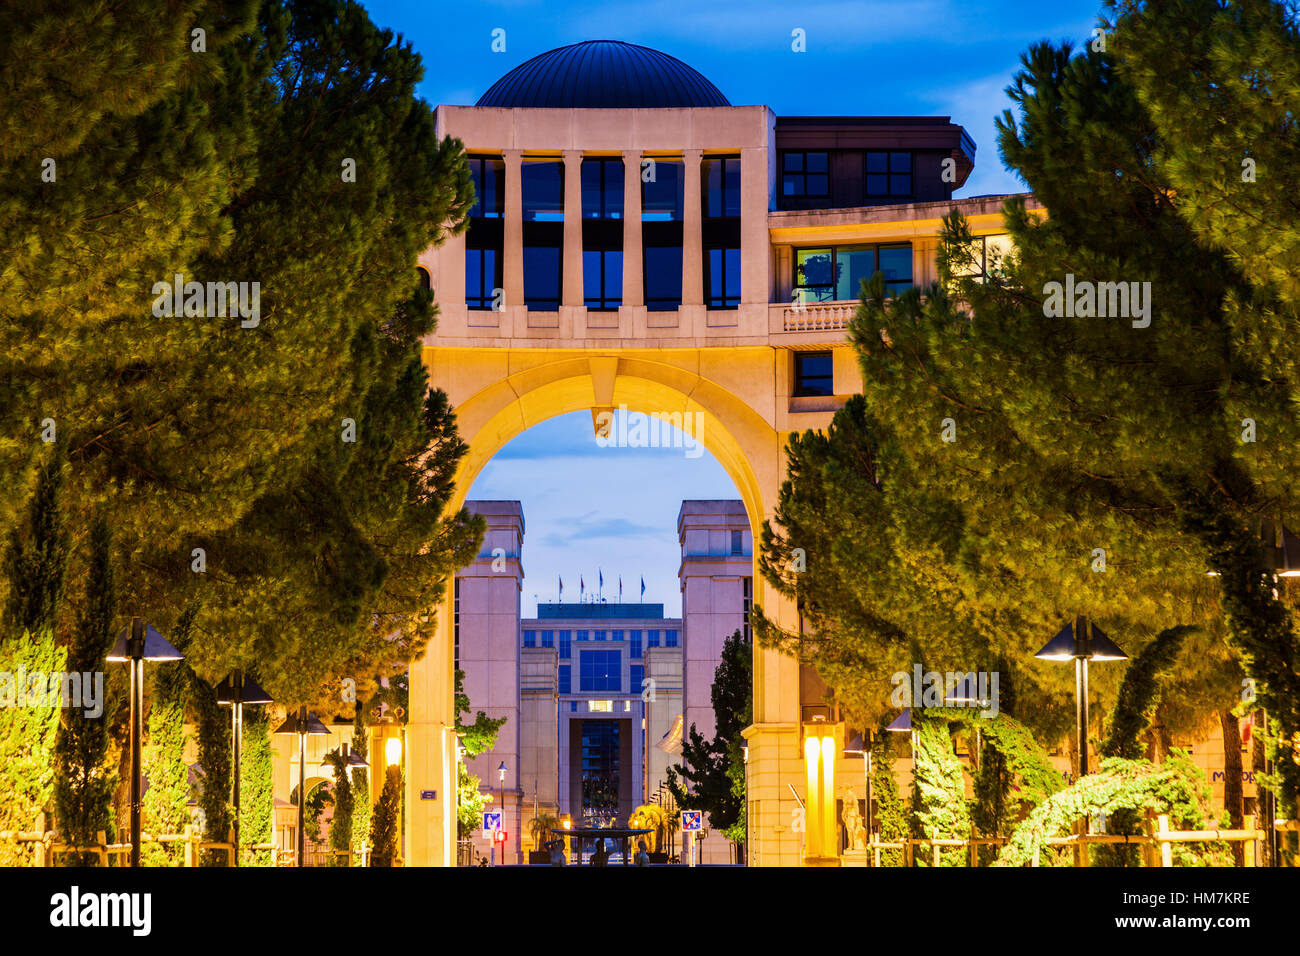 France, Occitanie, Montpellier, Modern architecture of Quartier Antigone - Stock Image